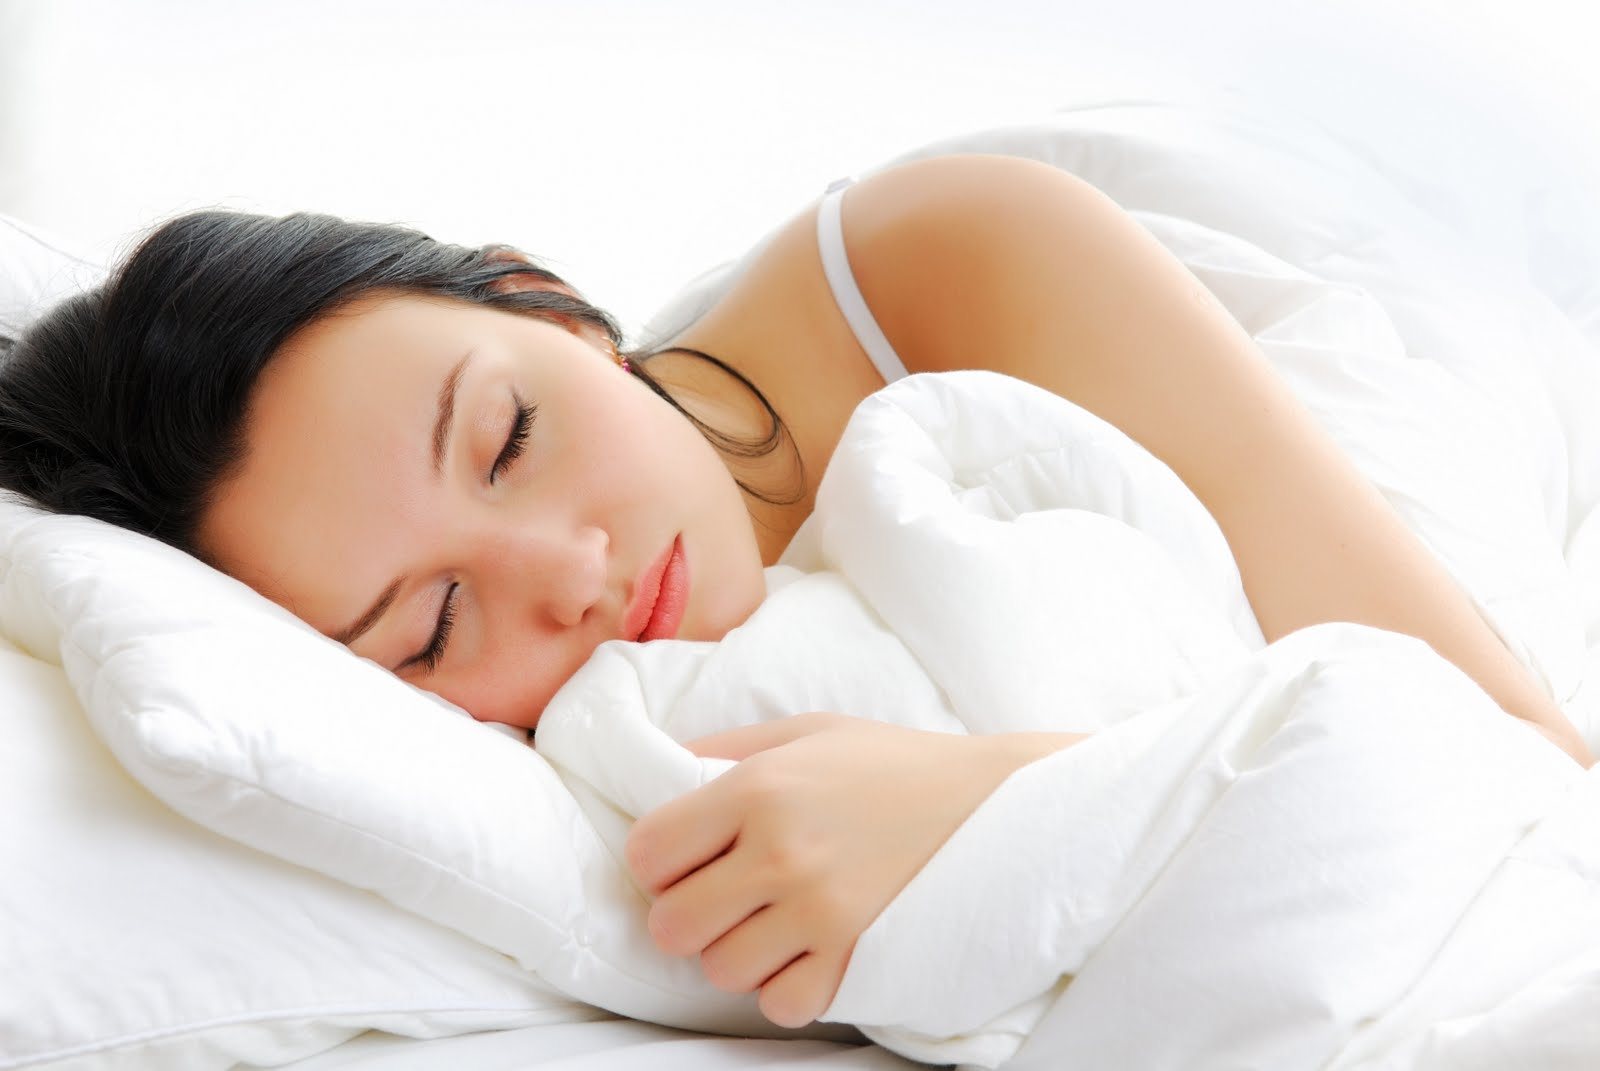 Sexy girl sleeping in bed sex porn images for Sleeping bed